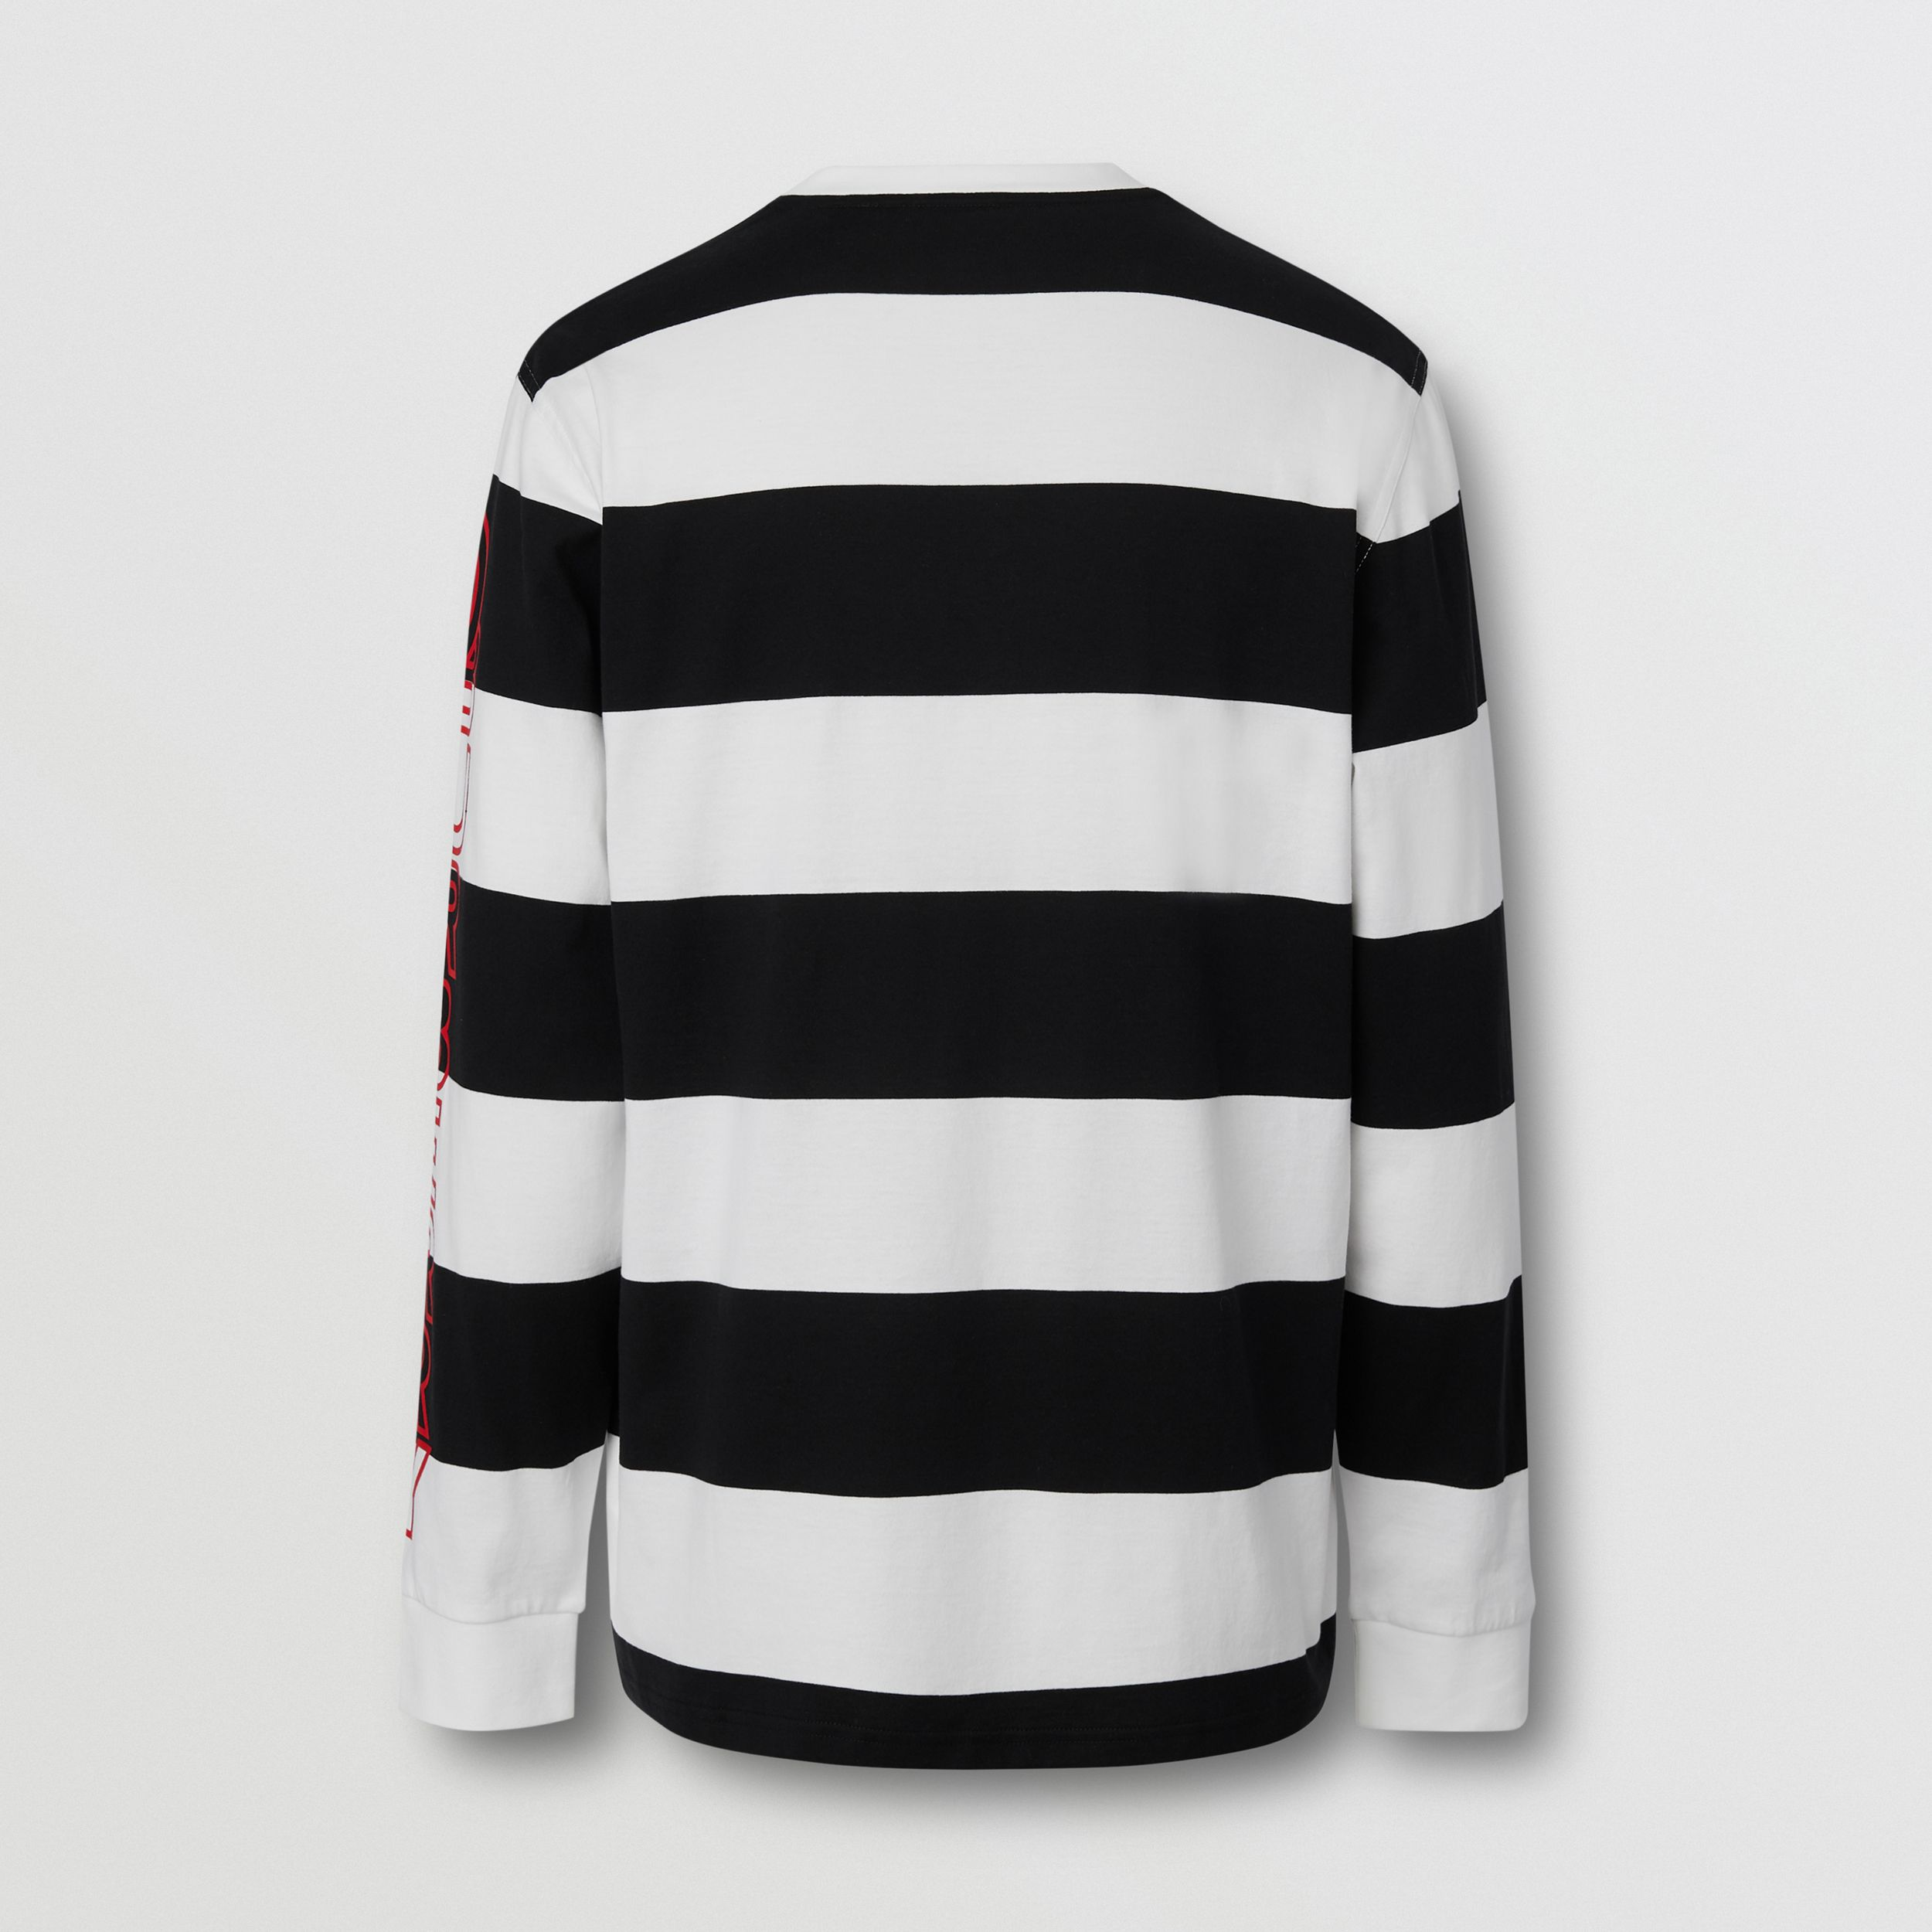 Long-sleeve Striped Cotton Oversized Top in Black/white - Men | Burberry - 2